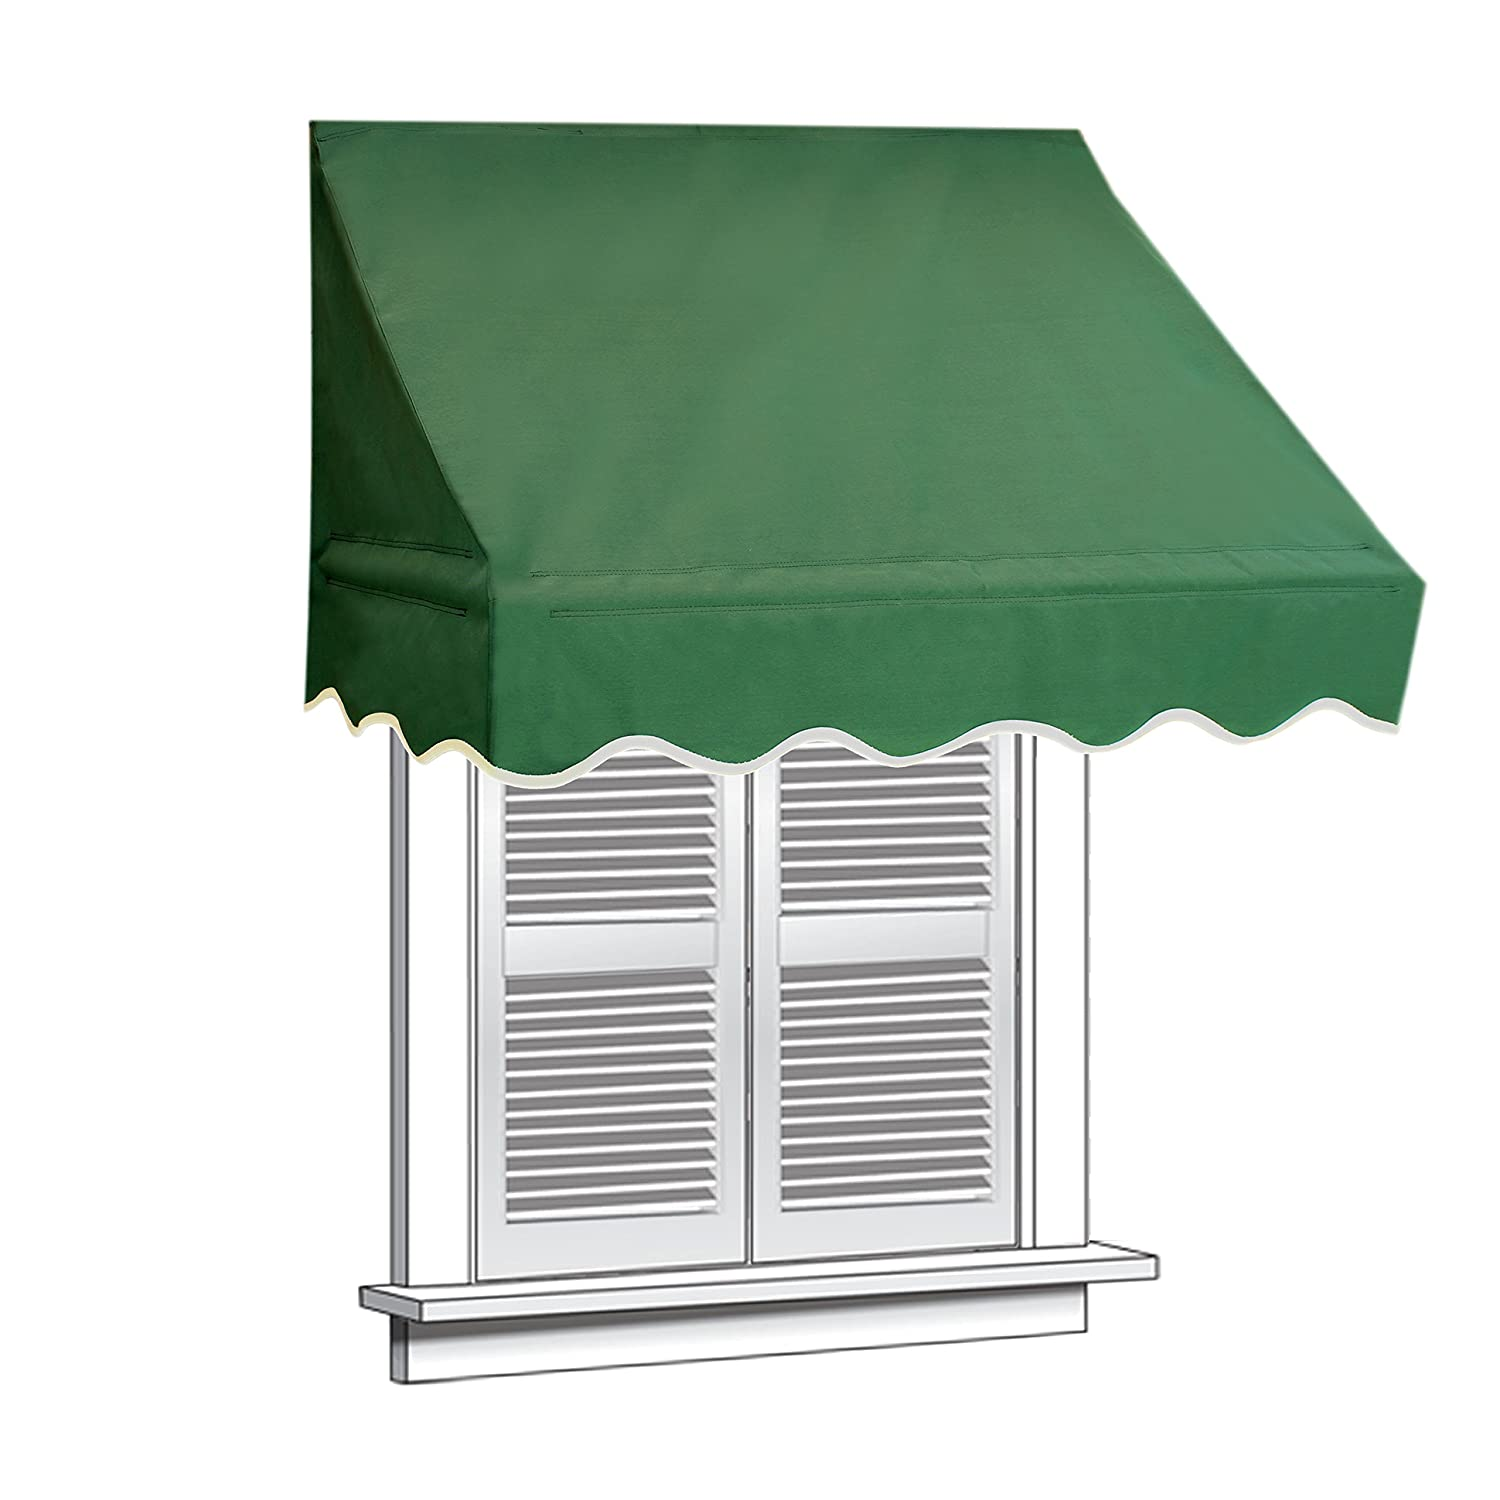 ALEKO 4x2 Green Window Awning Door Canopy 4-Foot Decorator Awning